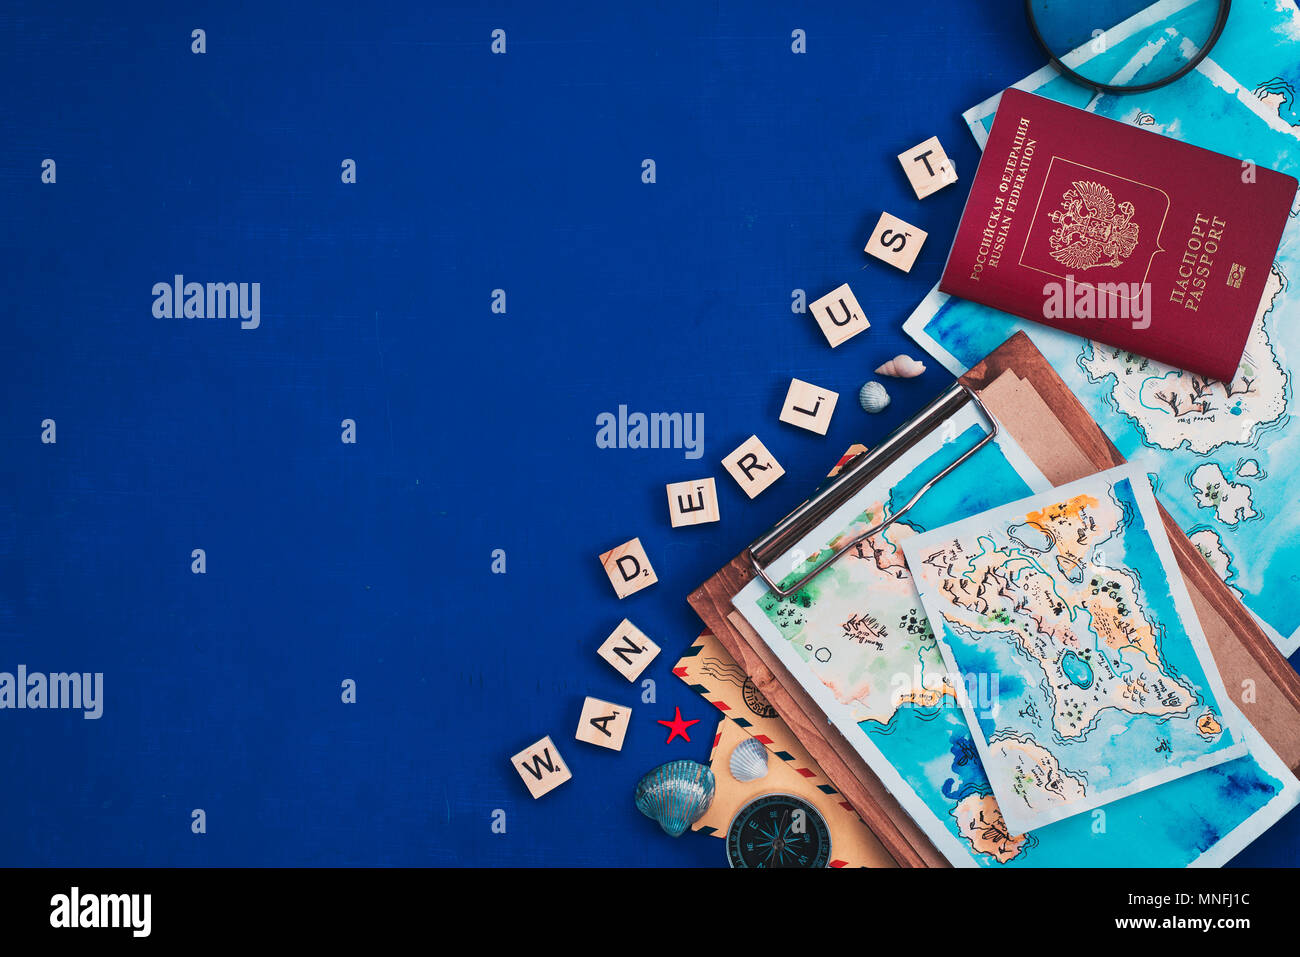 Sea travel and exploration concept. Watercolor maps, passport, compass, post envelopes, and Wanderlust wooden letters flat lay on a navy blue backgrou - Stock Image